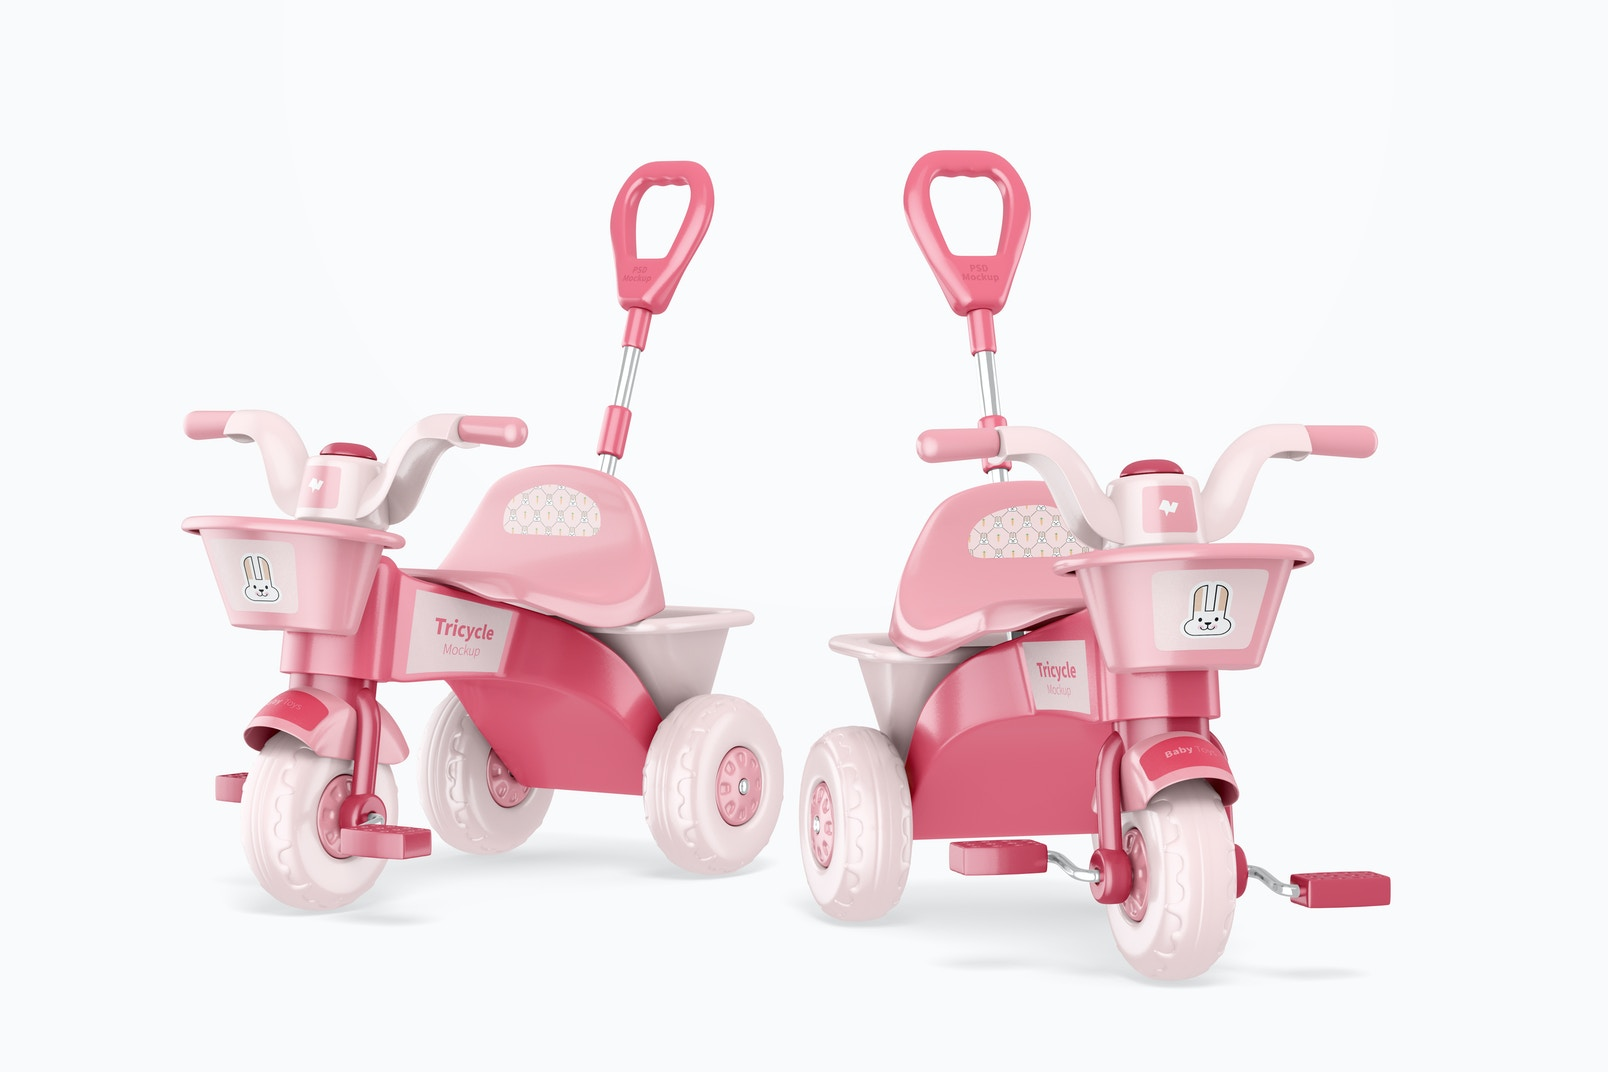 Tricycles Mockup